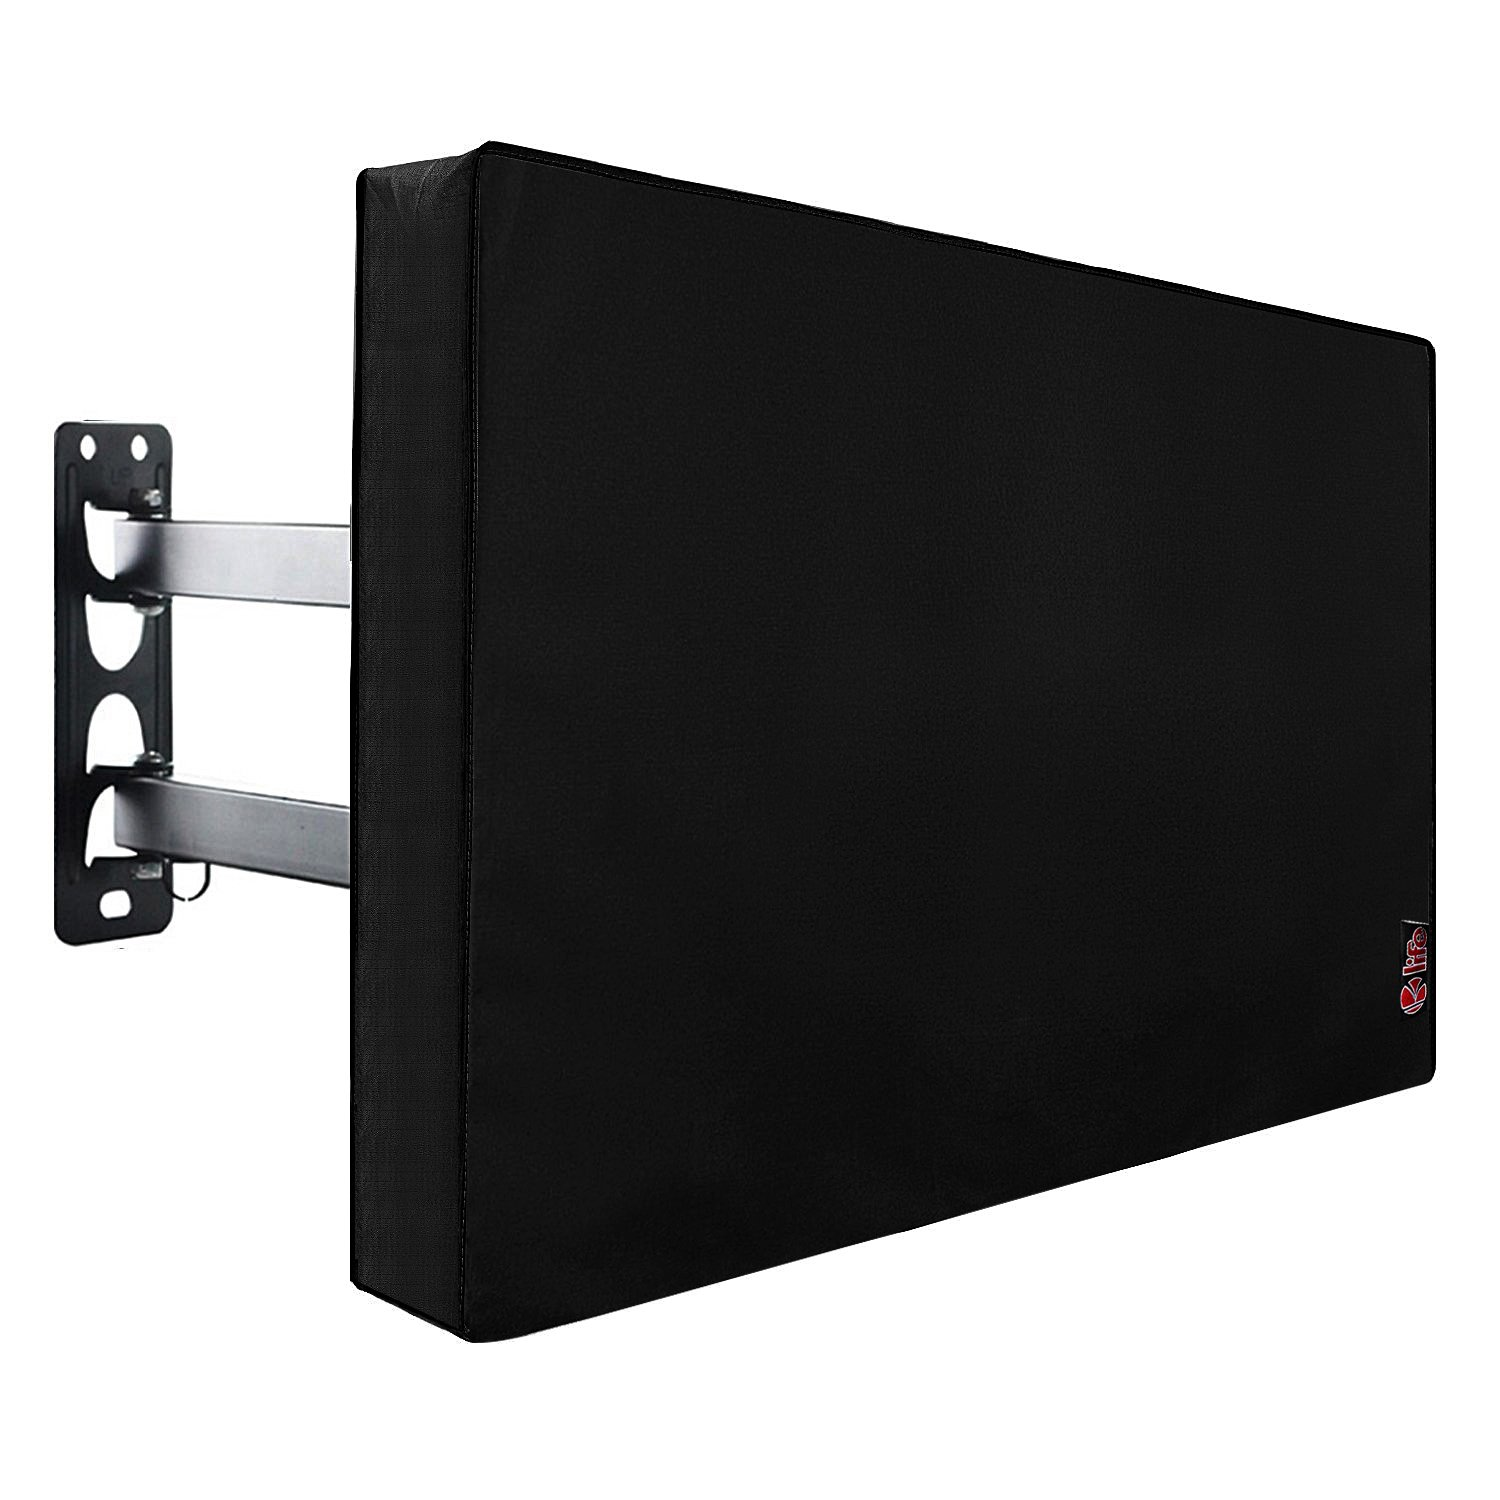 Outdoor TV Cover 40'' - 43'' with Scratch Resistant Liner, Bottom Seal, Weatherproof Universal Protector LCD, LED, Plasma Television Sets, Built in Remote Controller Storage Pocket